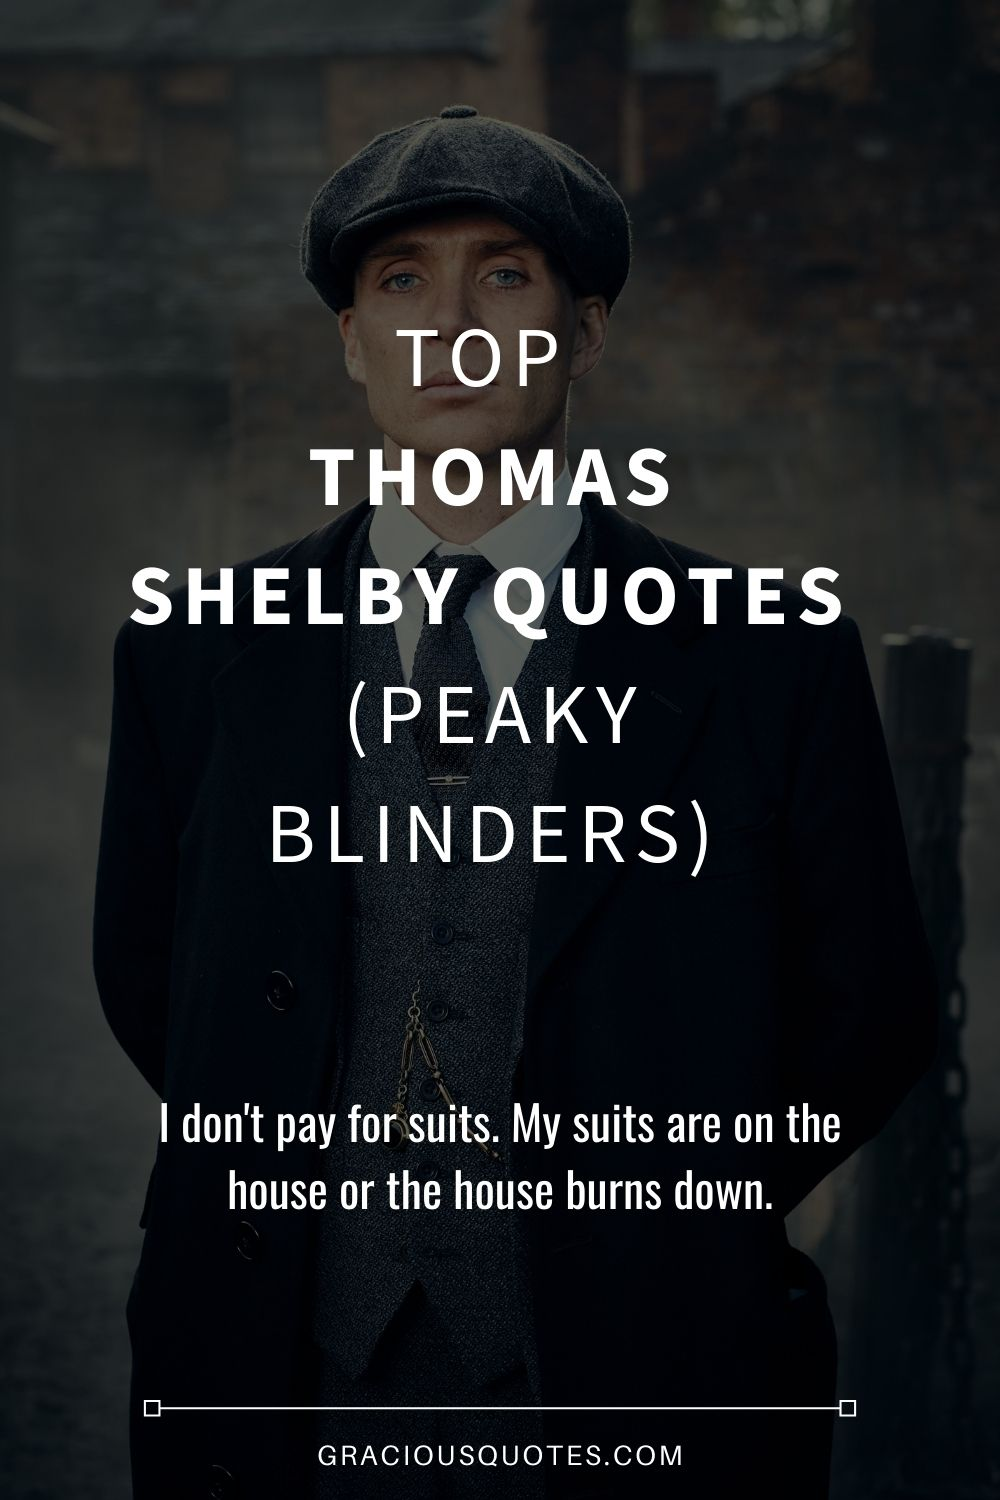 Top Thomas Shelby Quotes (PEAKY BLINDERS) - Gracious Quotes